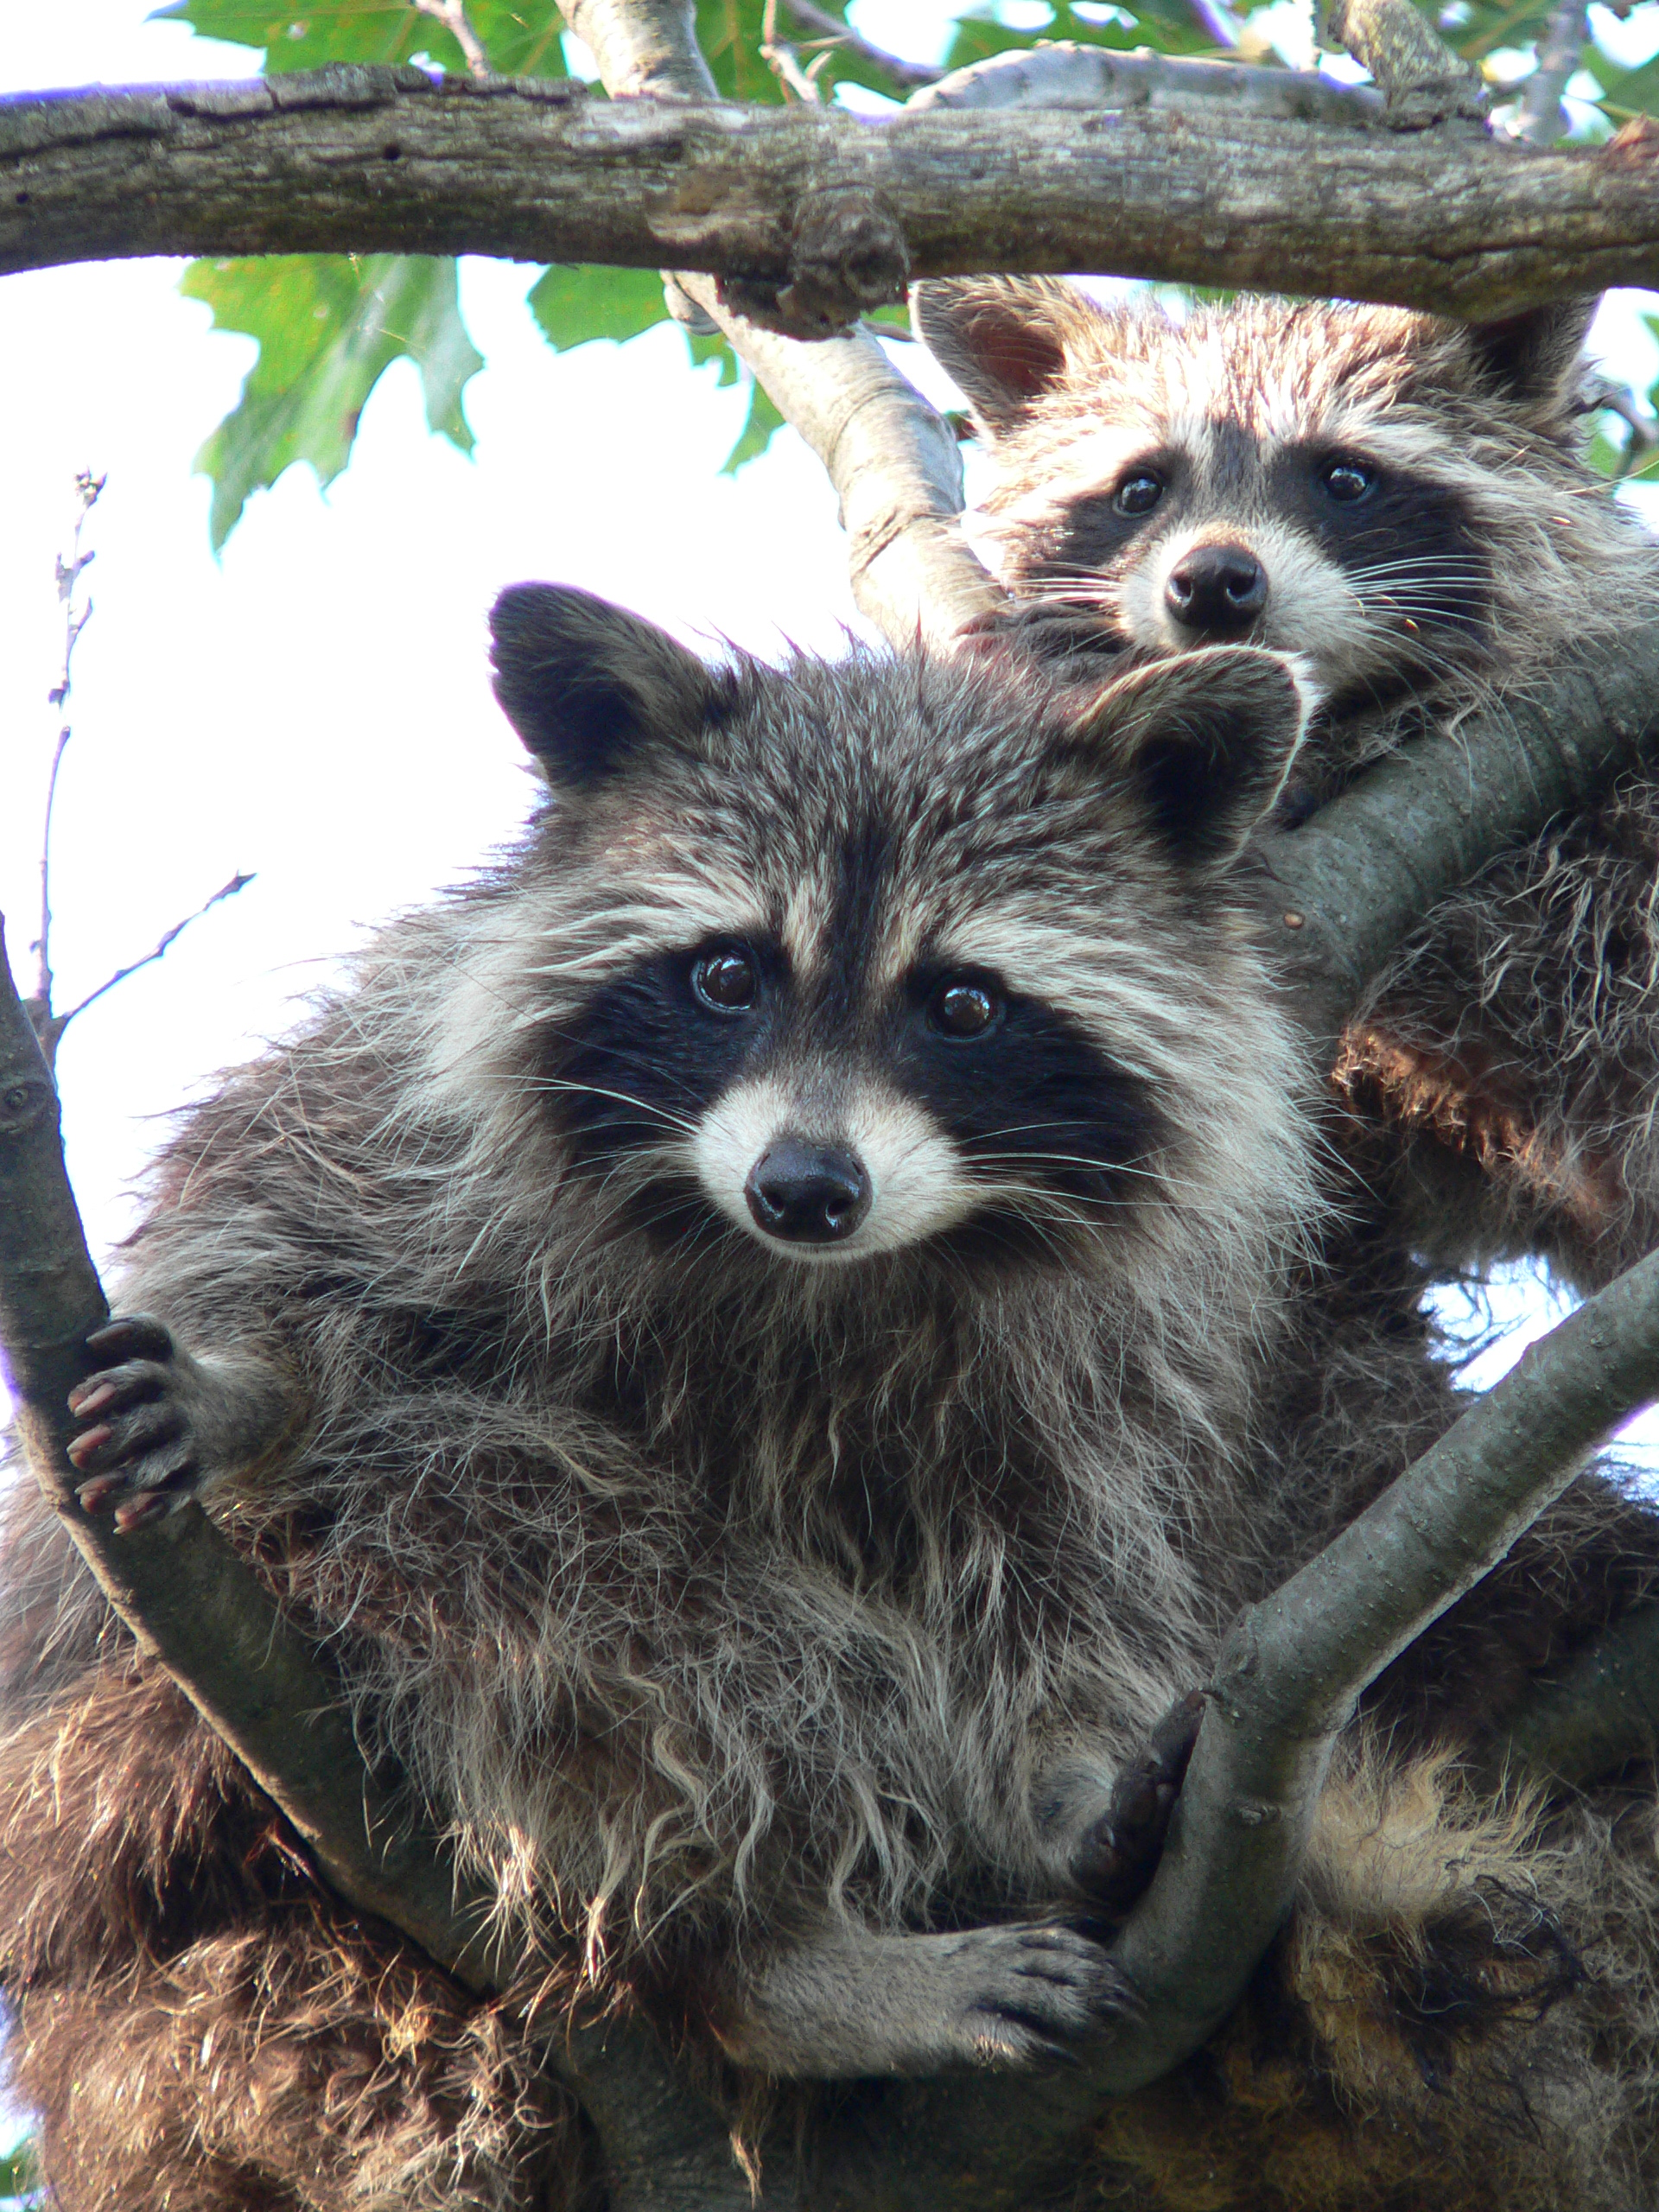 Coon hunting - Wikipedia